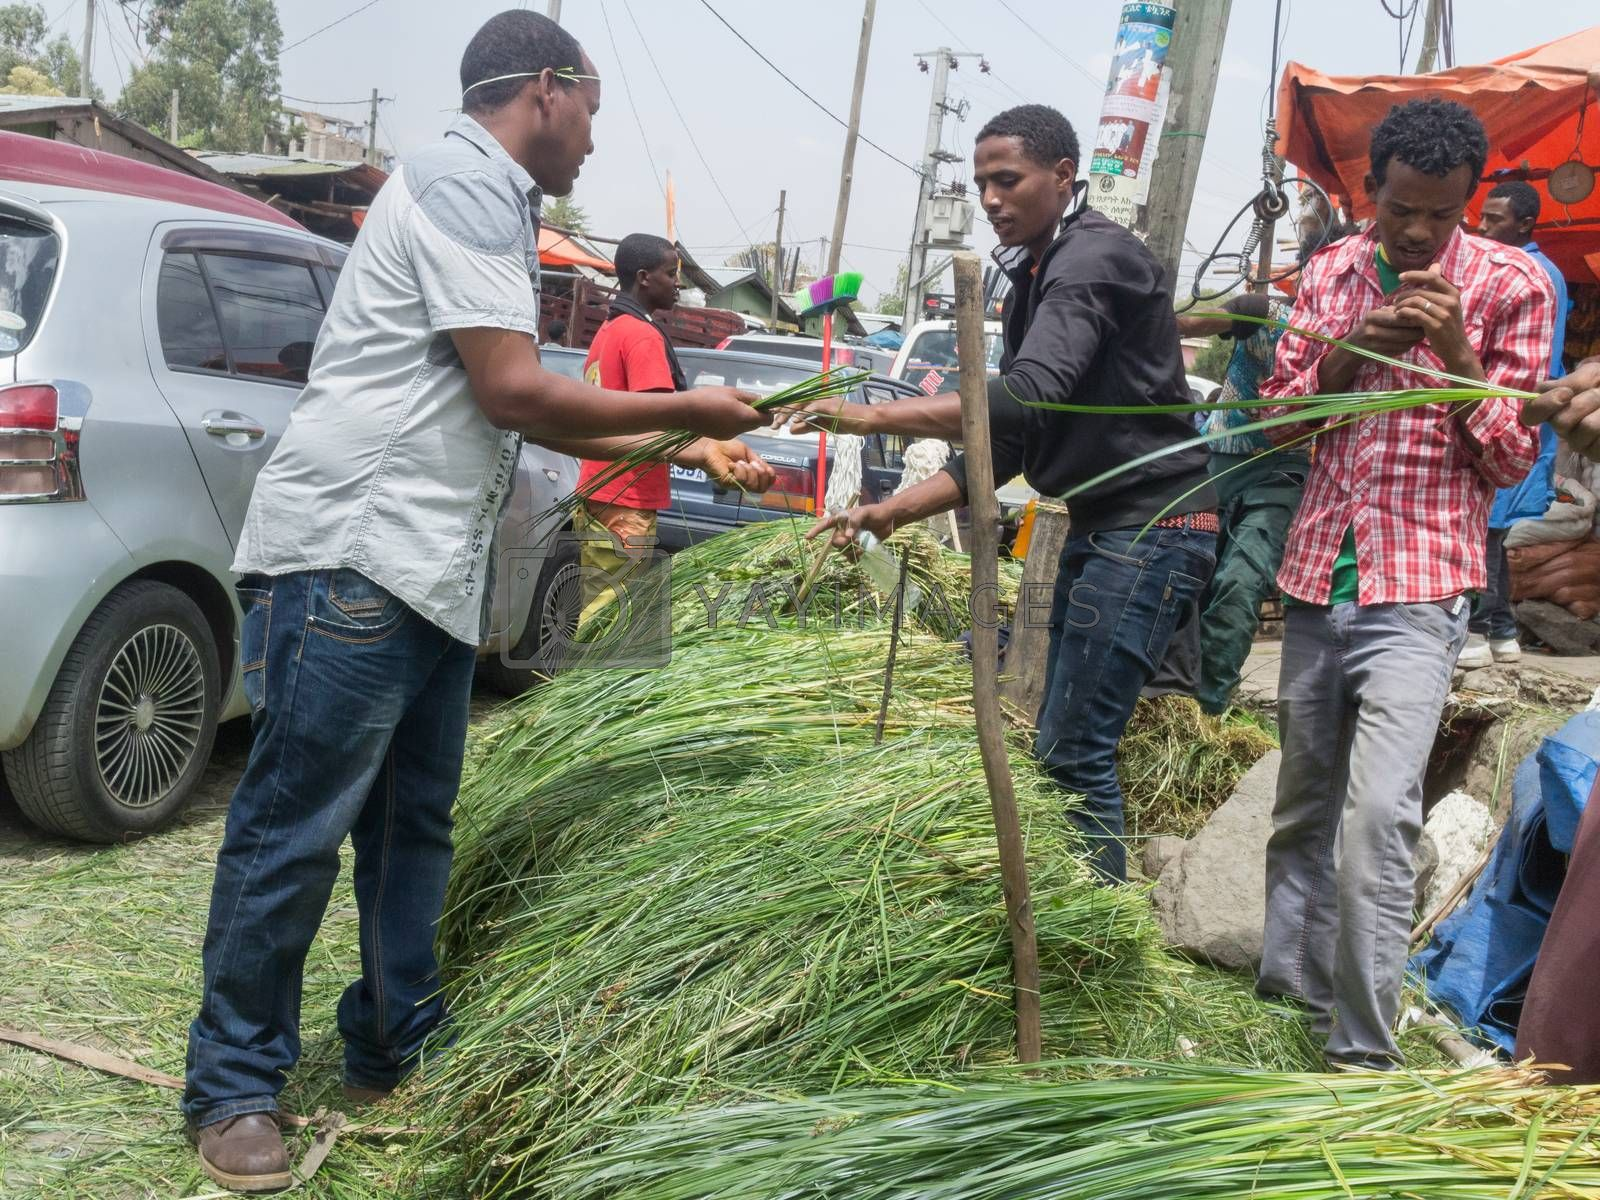 Addis Ababa: April 11: Freshly cut grass which used for decorating floors during the holidays available for sale at a local market during Easter eve on April 11, 2015 in Addis Ababa, Ethiopia